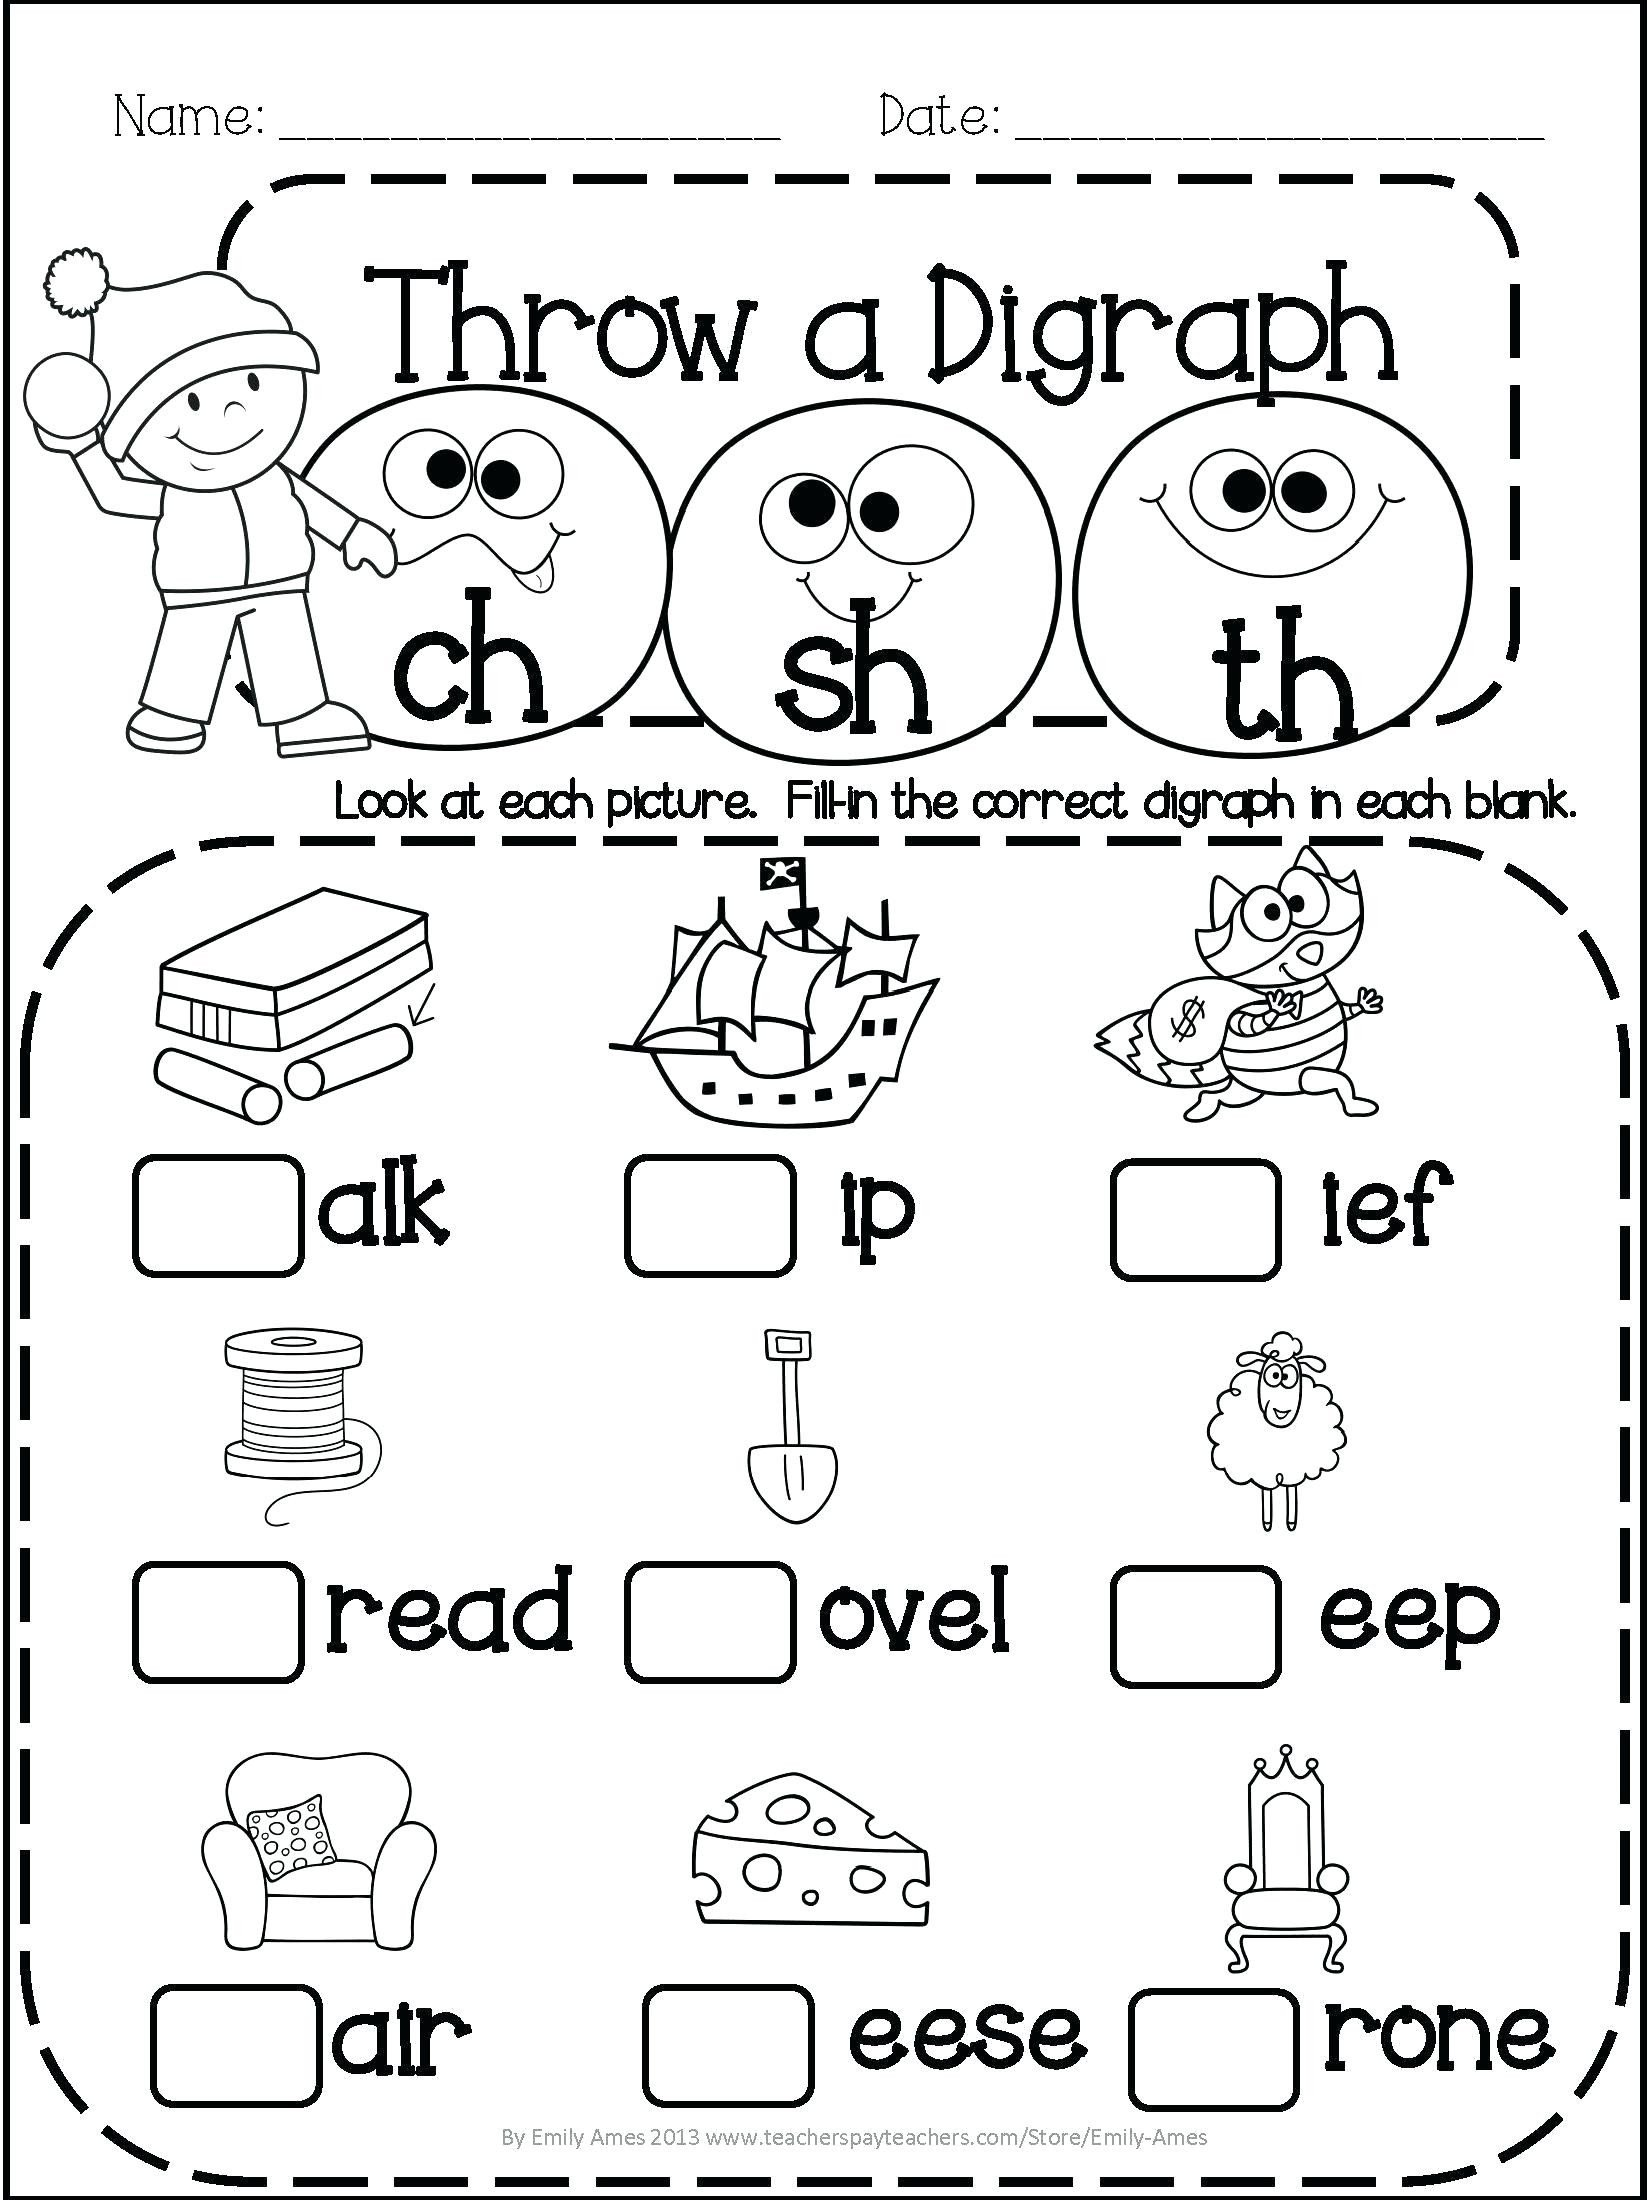 1st Grade Reading Worksheets Pdf 1989 Generationinitiative Page 5 Free Printable Math